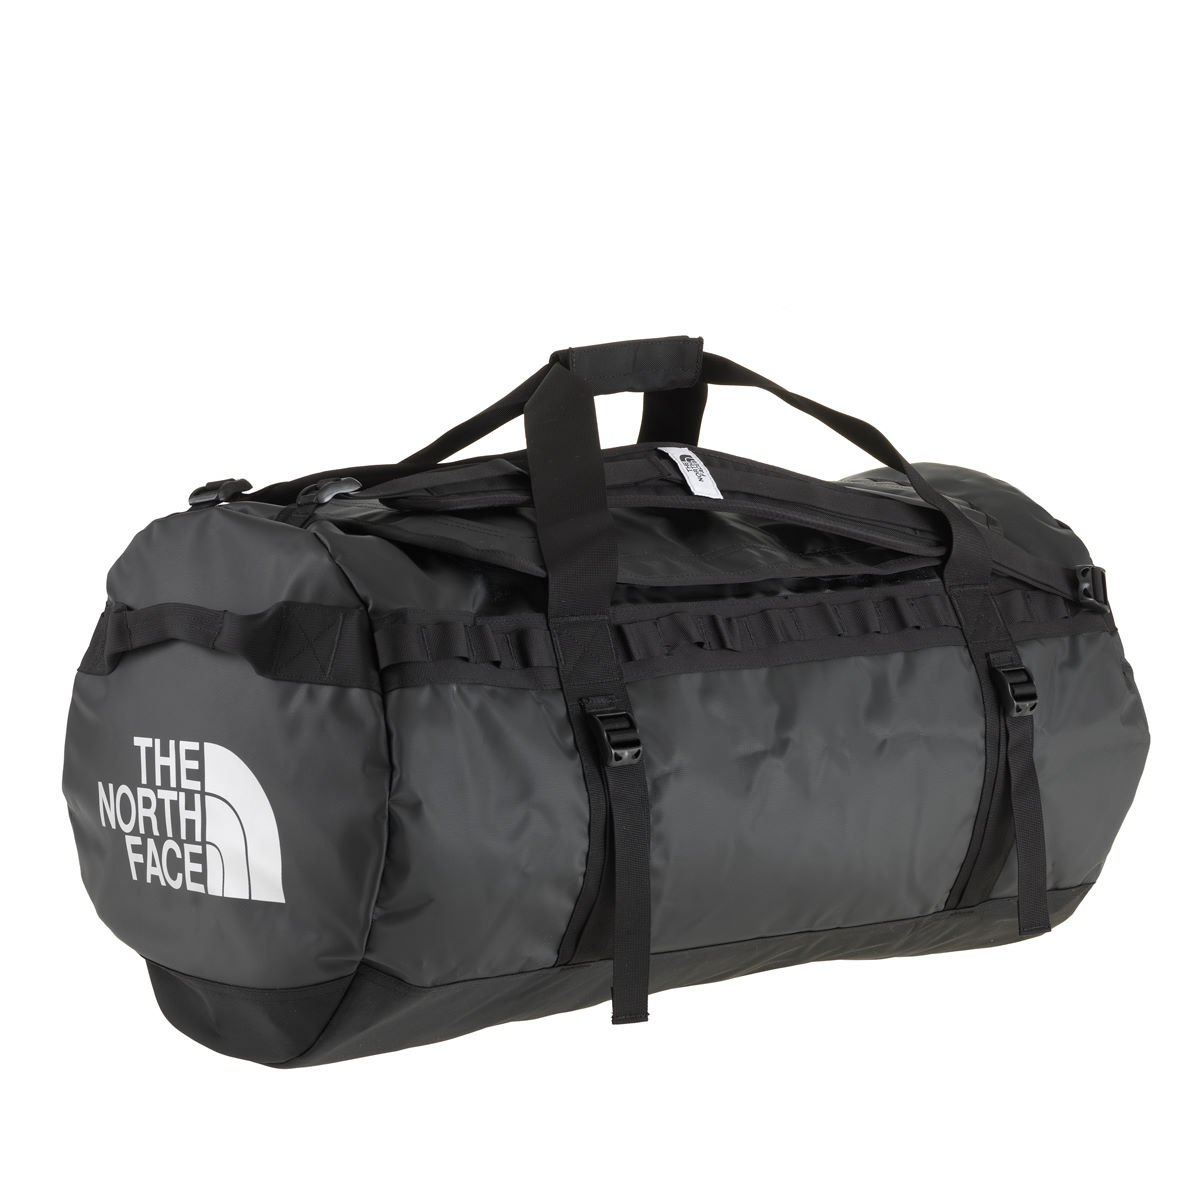 Wiggle The North Face Base Camp Duffel Bag Large Travel Bags